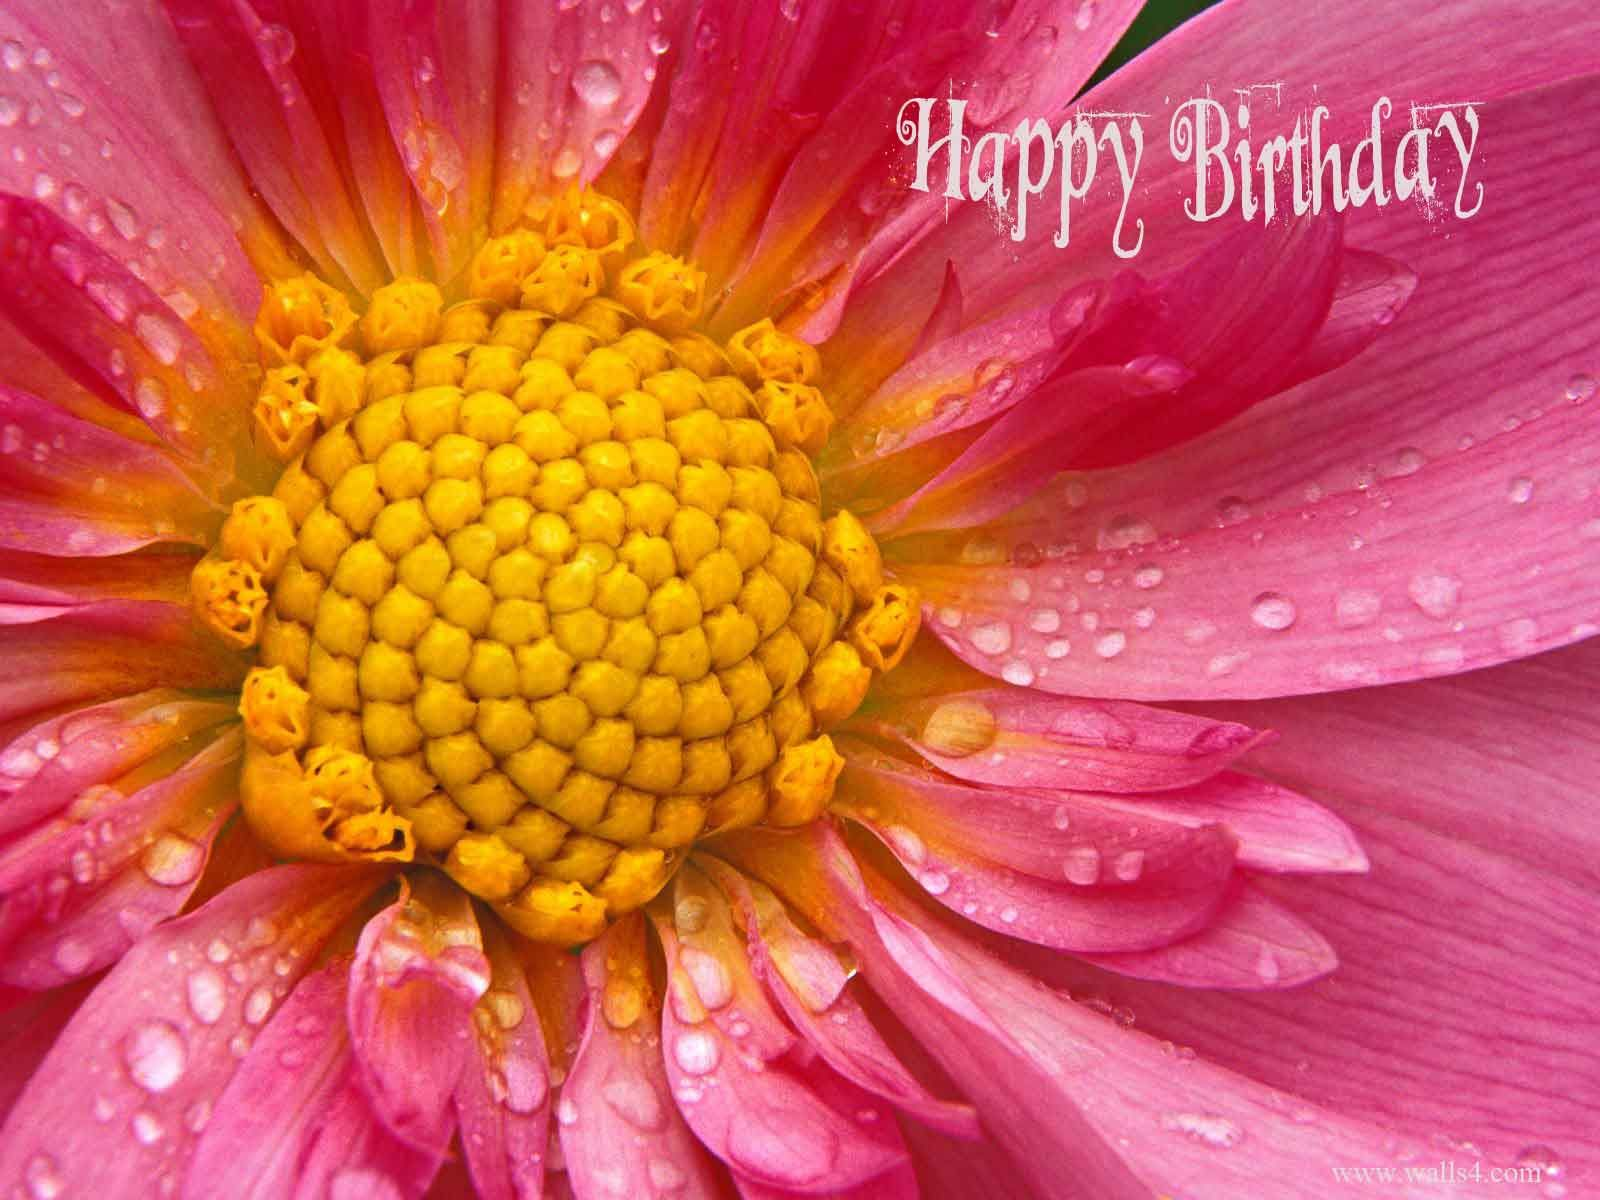 Pin By Darshan Kumar On Wishes Pinterest Flowers Happy Birthday